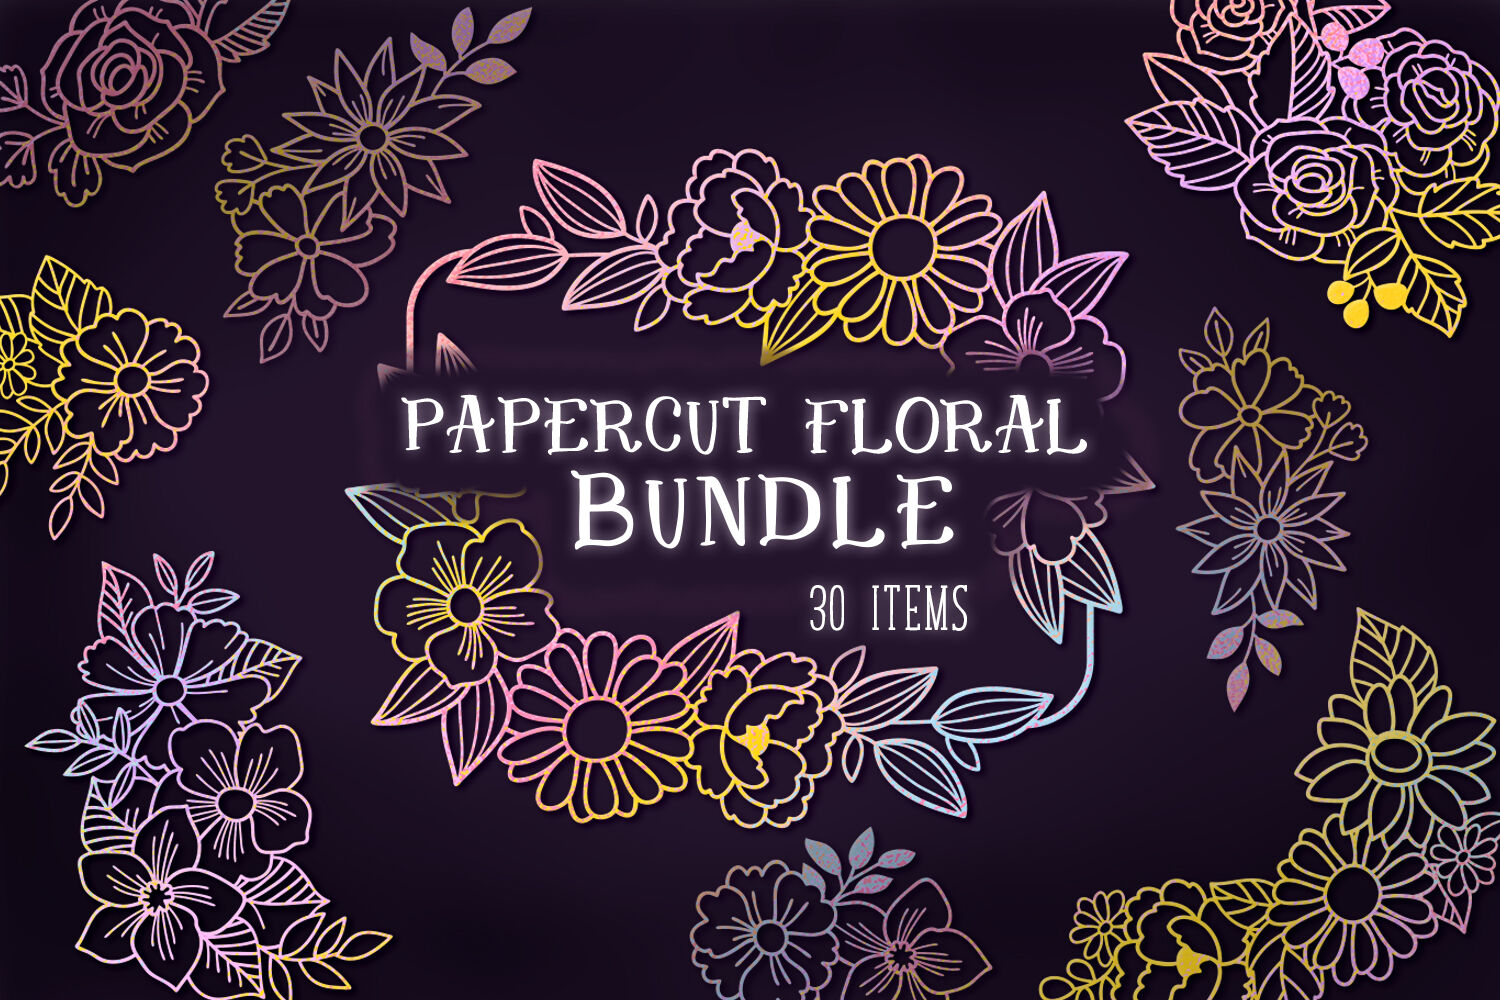 Papercut Floral Bundle 30 Svg Items By Tatiana Cociorva Designs